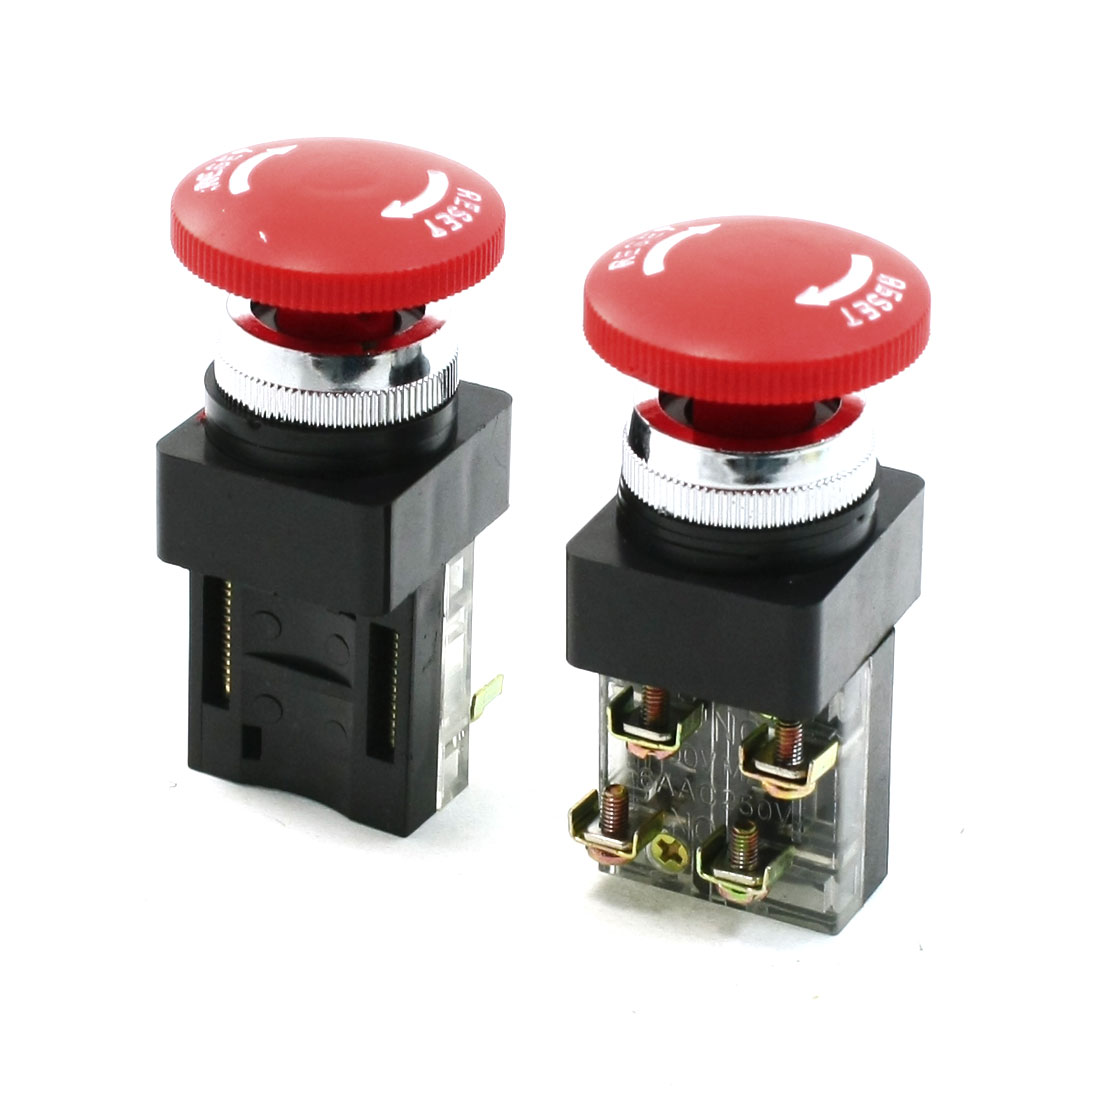 AC 250V 6A 1NO 1NC DPST Momentary Red Mushroom Head Push Button Switch